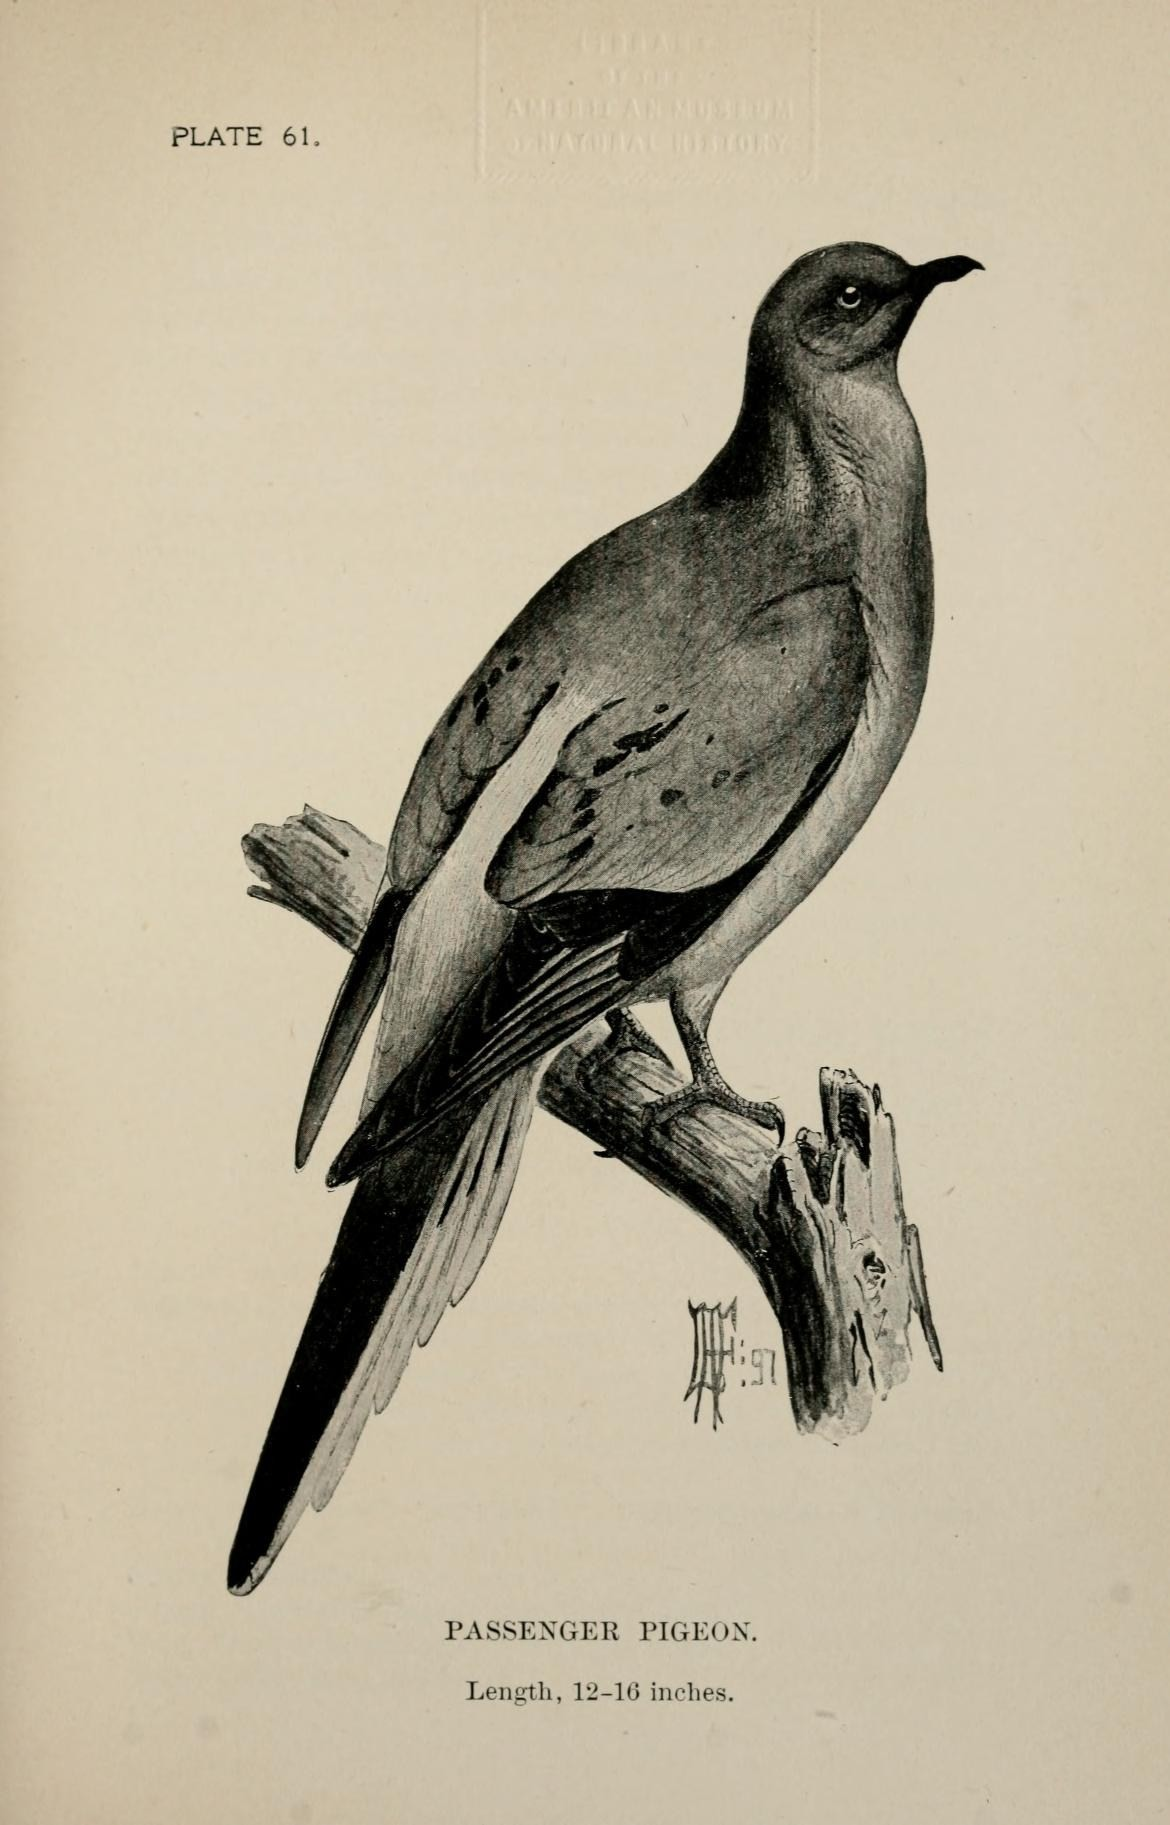 Artwork provided by Biodiversity Heritage Library